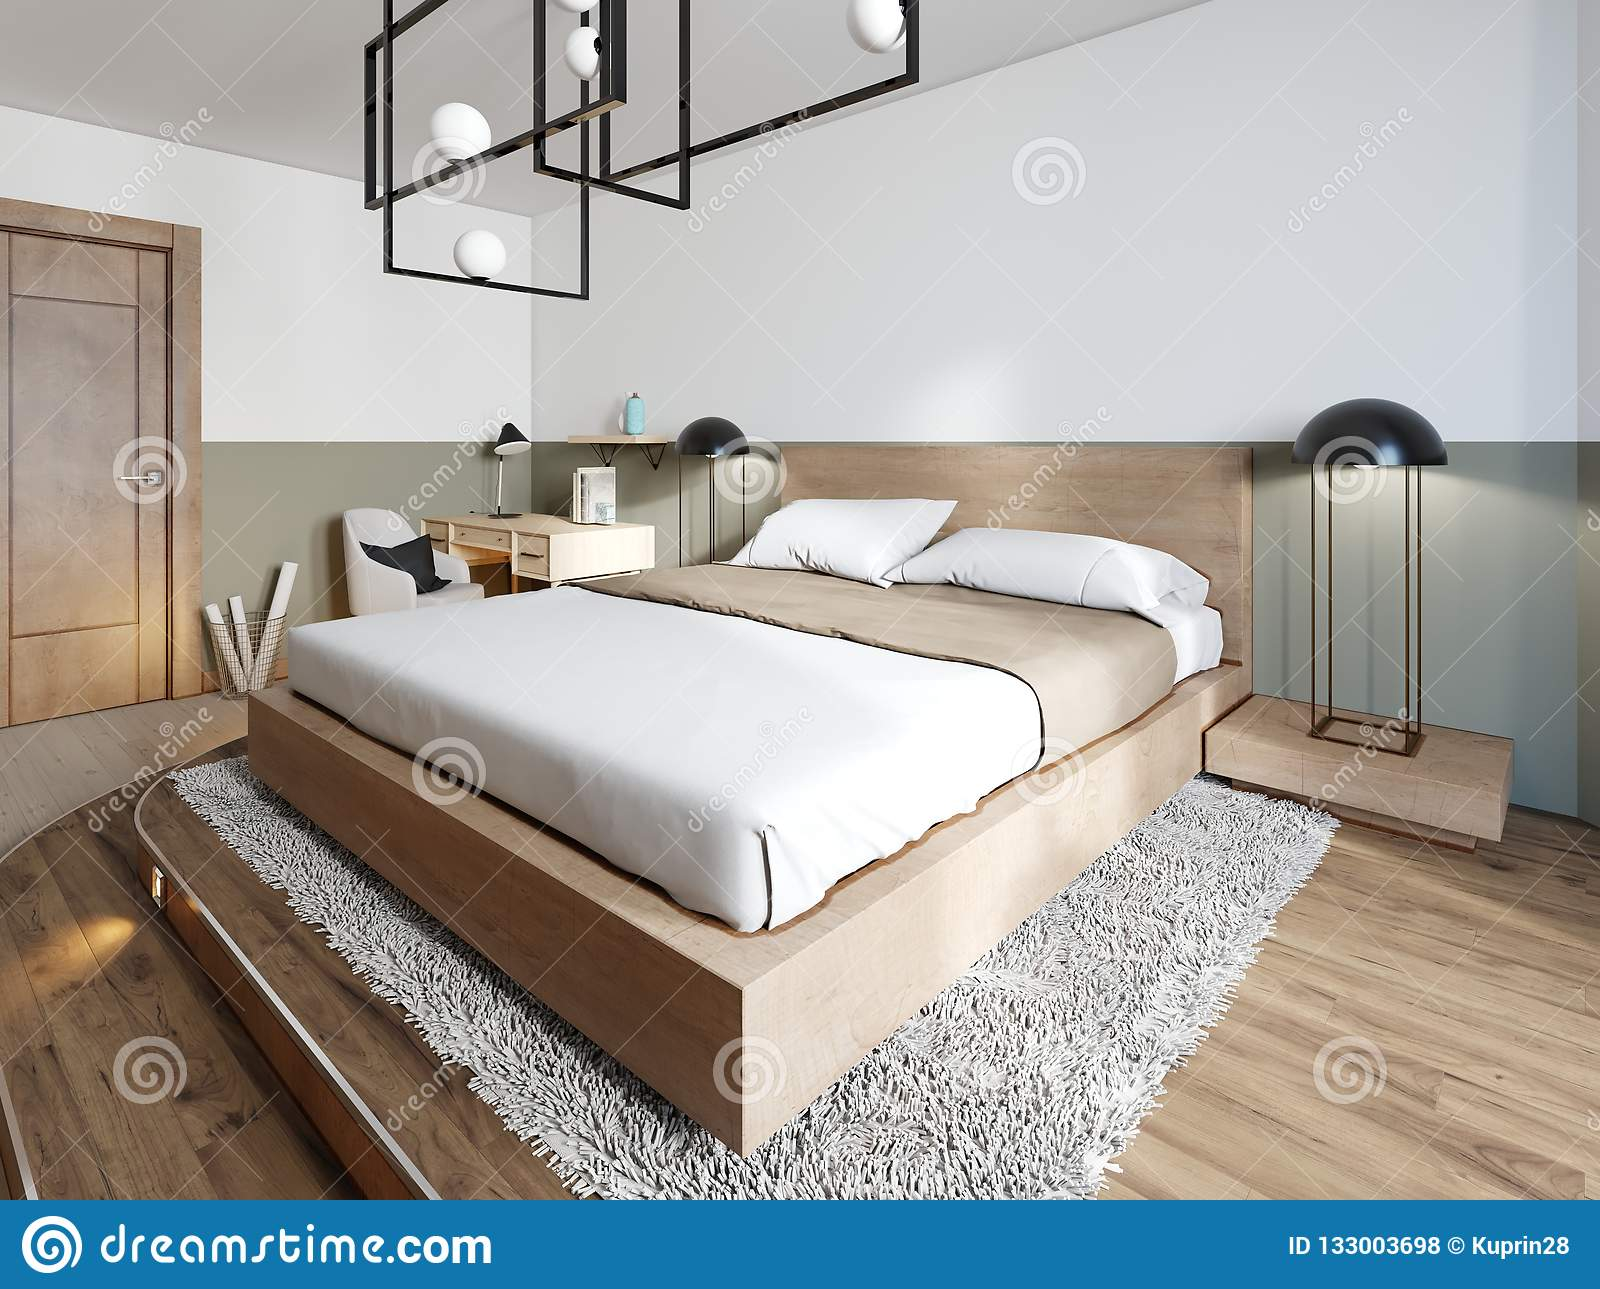 A Modern Wooden Bed On A Two Stage Wooden Catwalk With Lighting A Bedroom In A Loft Style Stock Illustration Illustration Of Design Furnishing 133003698